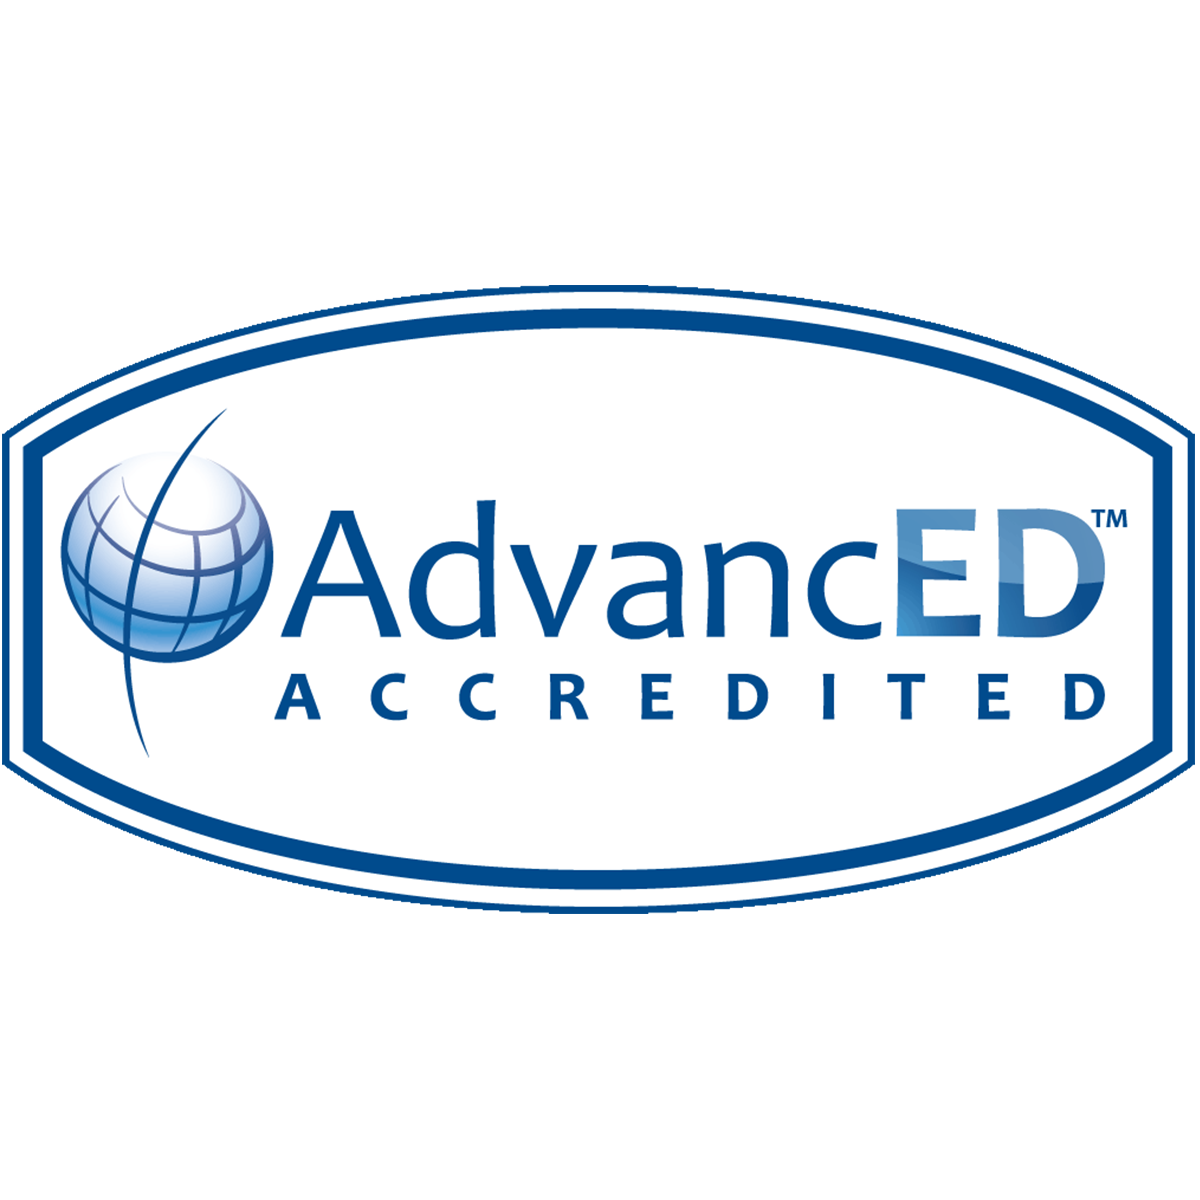 Advanced_Accredited.png